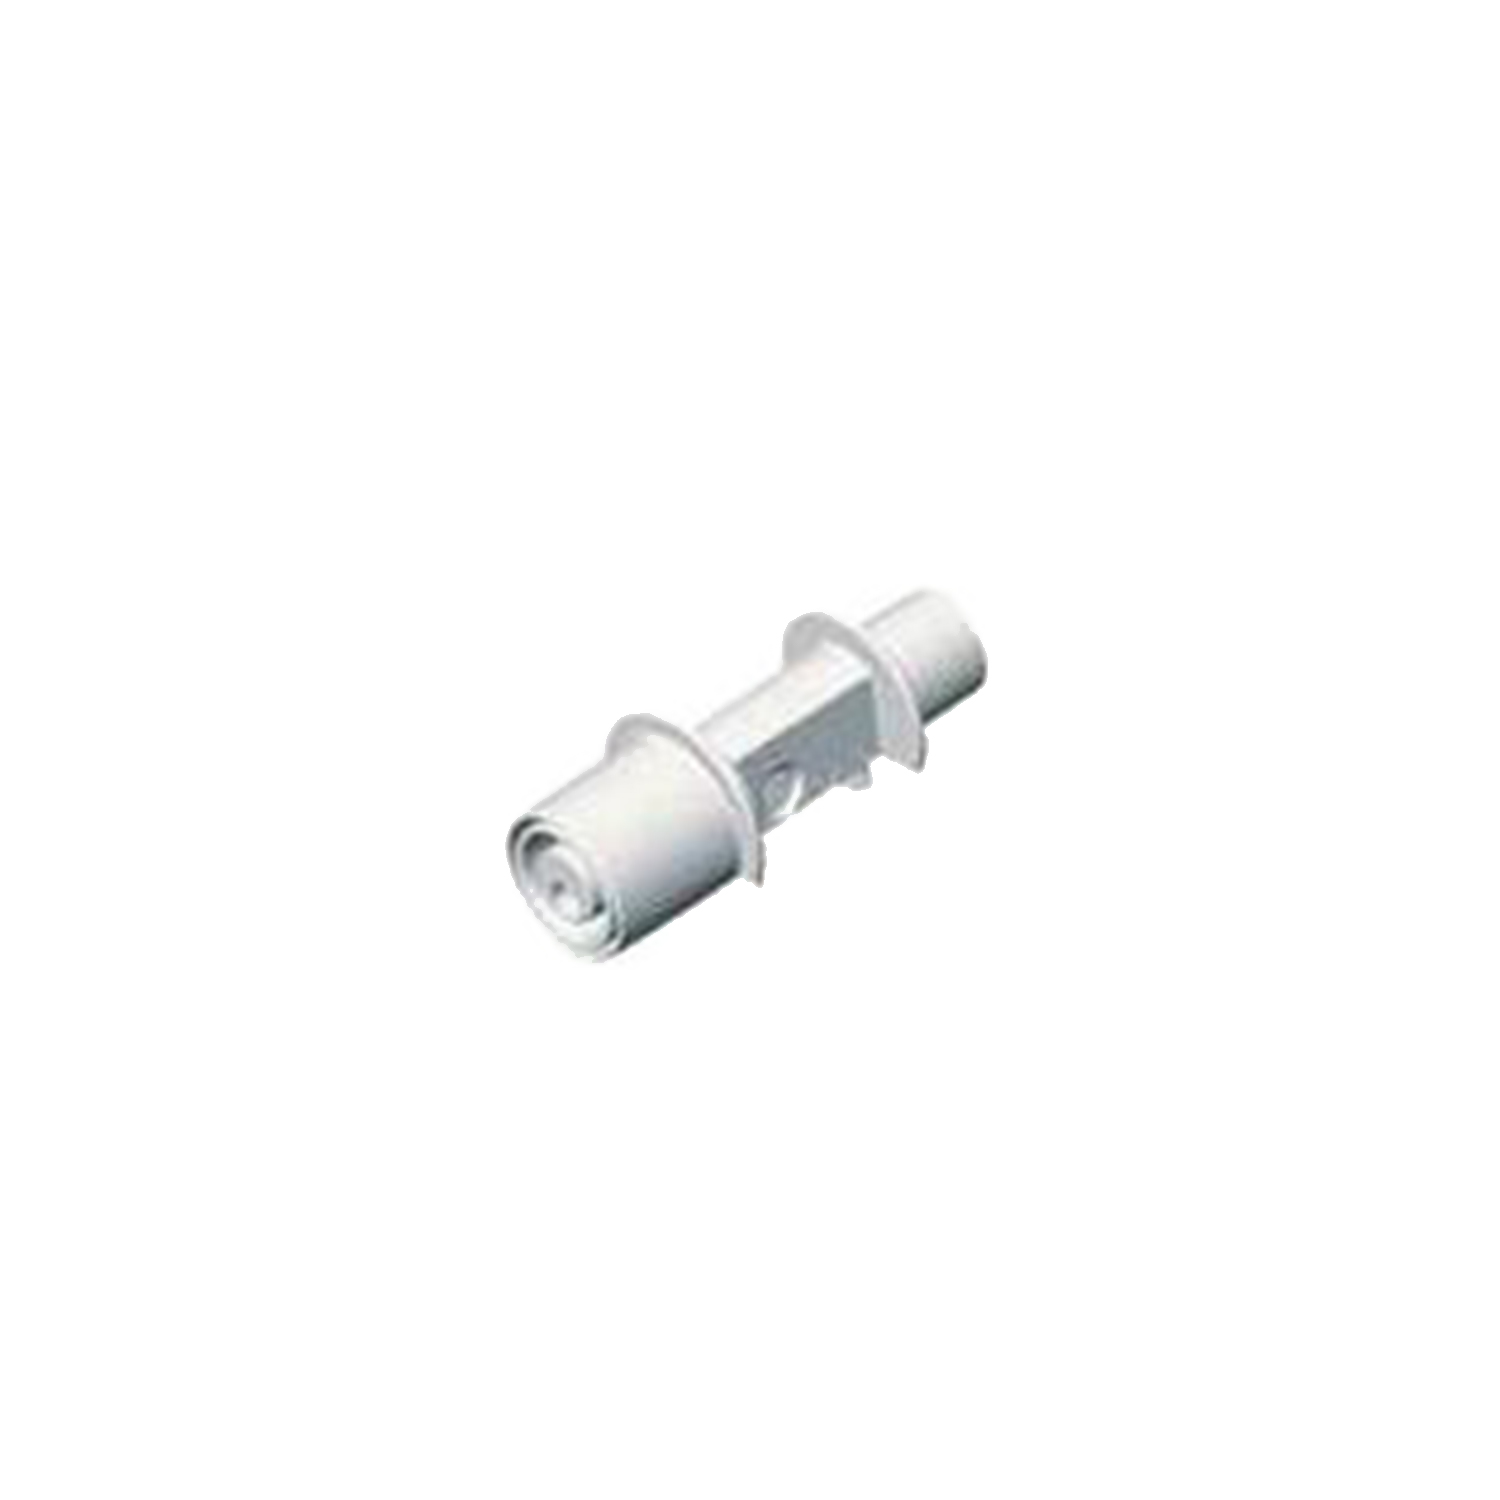 Neonate Airway Adapter for use with Masimo EMMA Capnometer